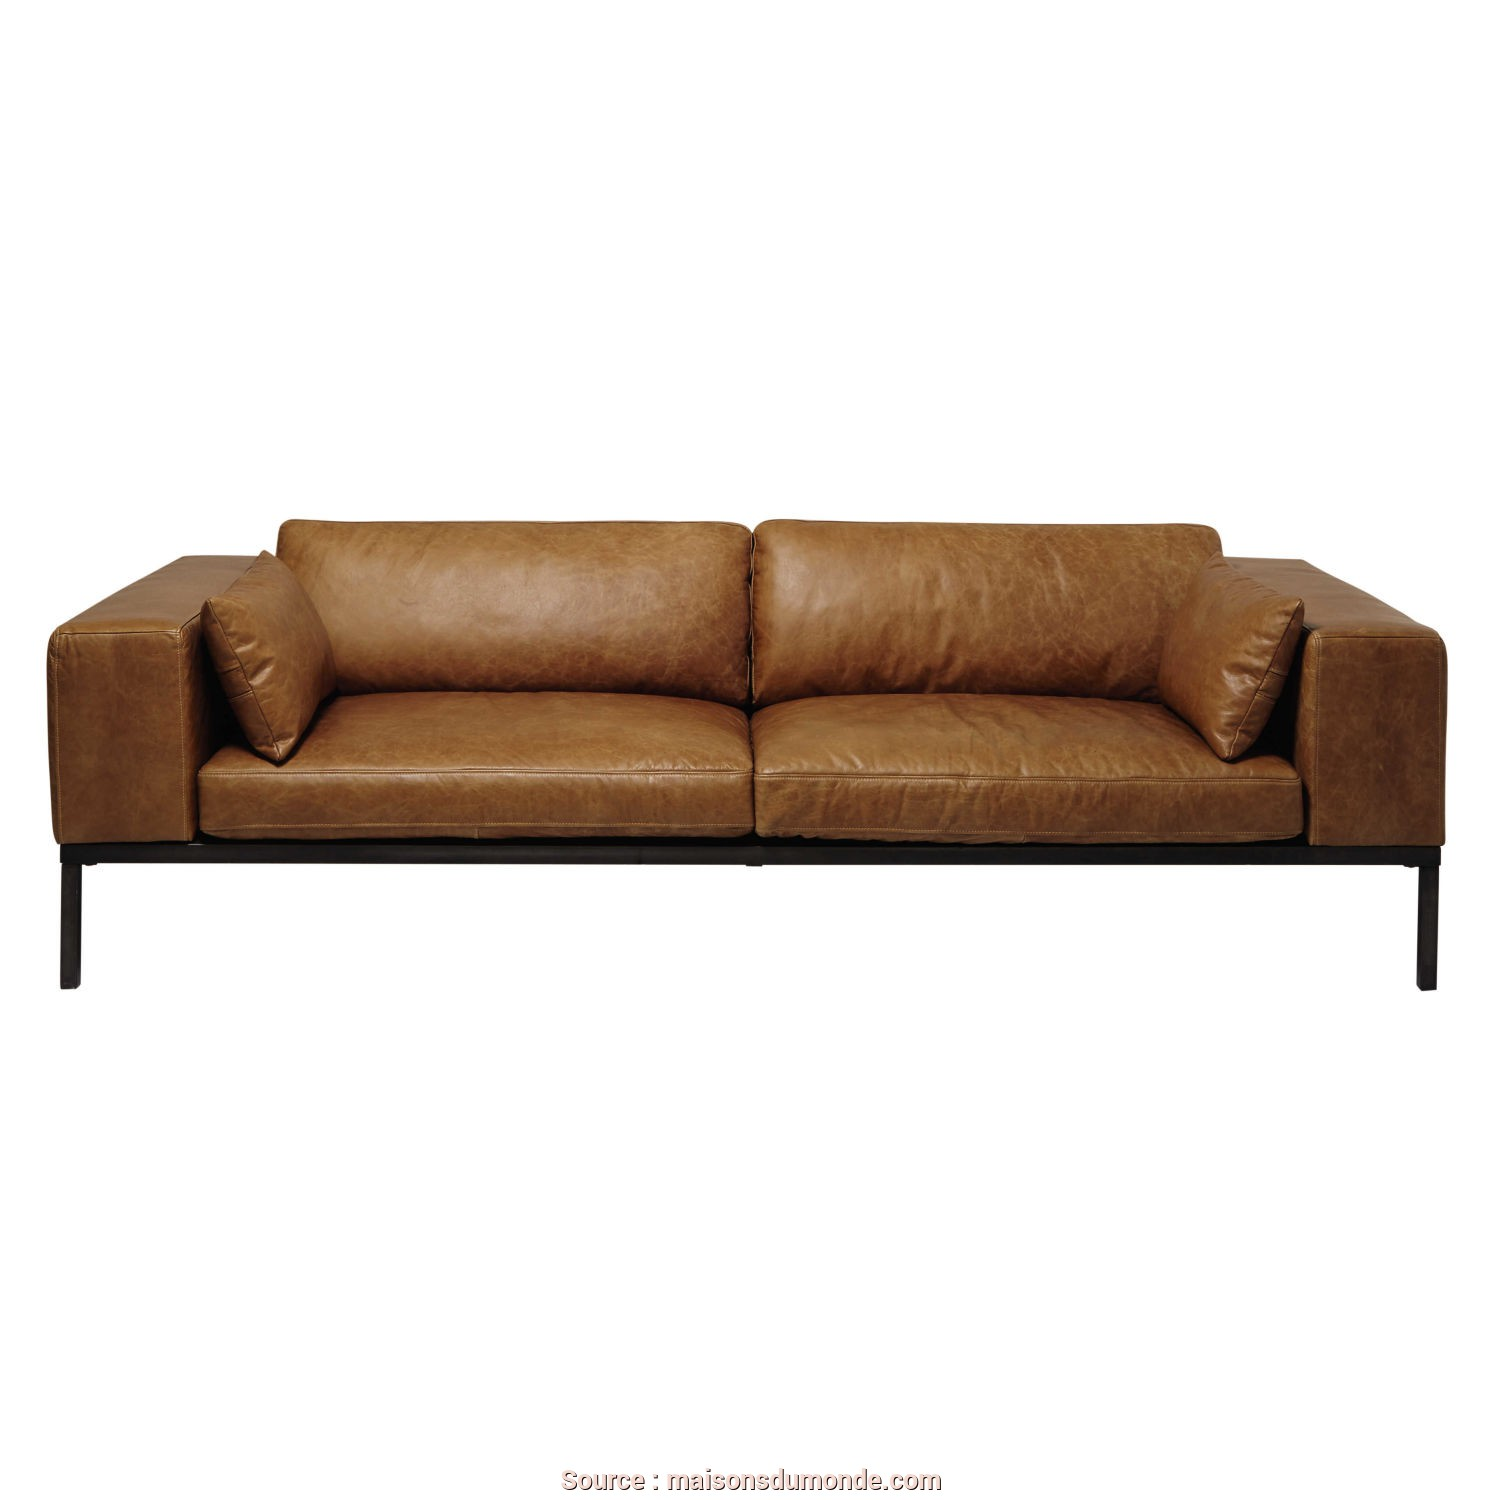 Maison Du Monde Divano Verde, Bellissima 4-Seater Leather Sofa In Camel, Maisons Du Monde